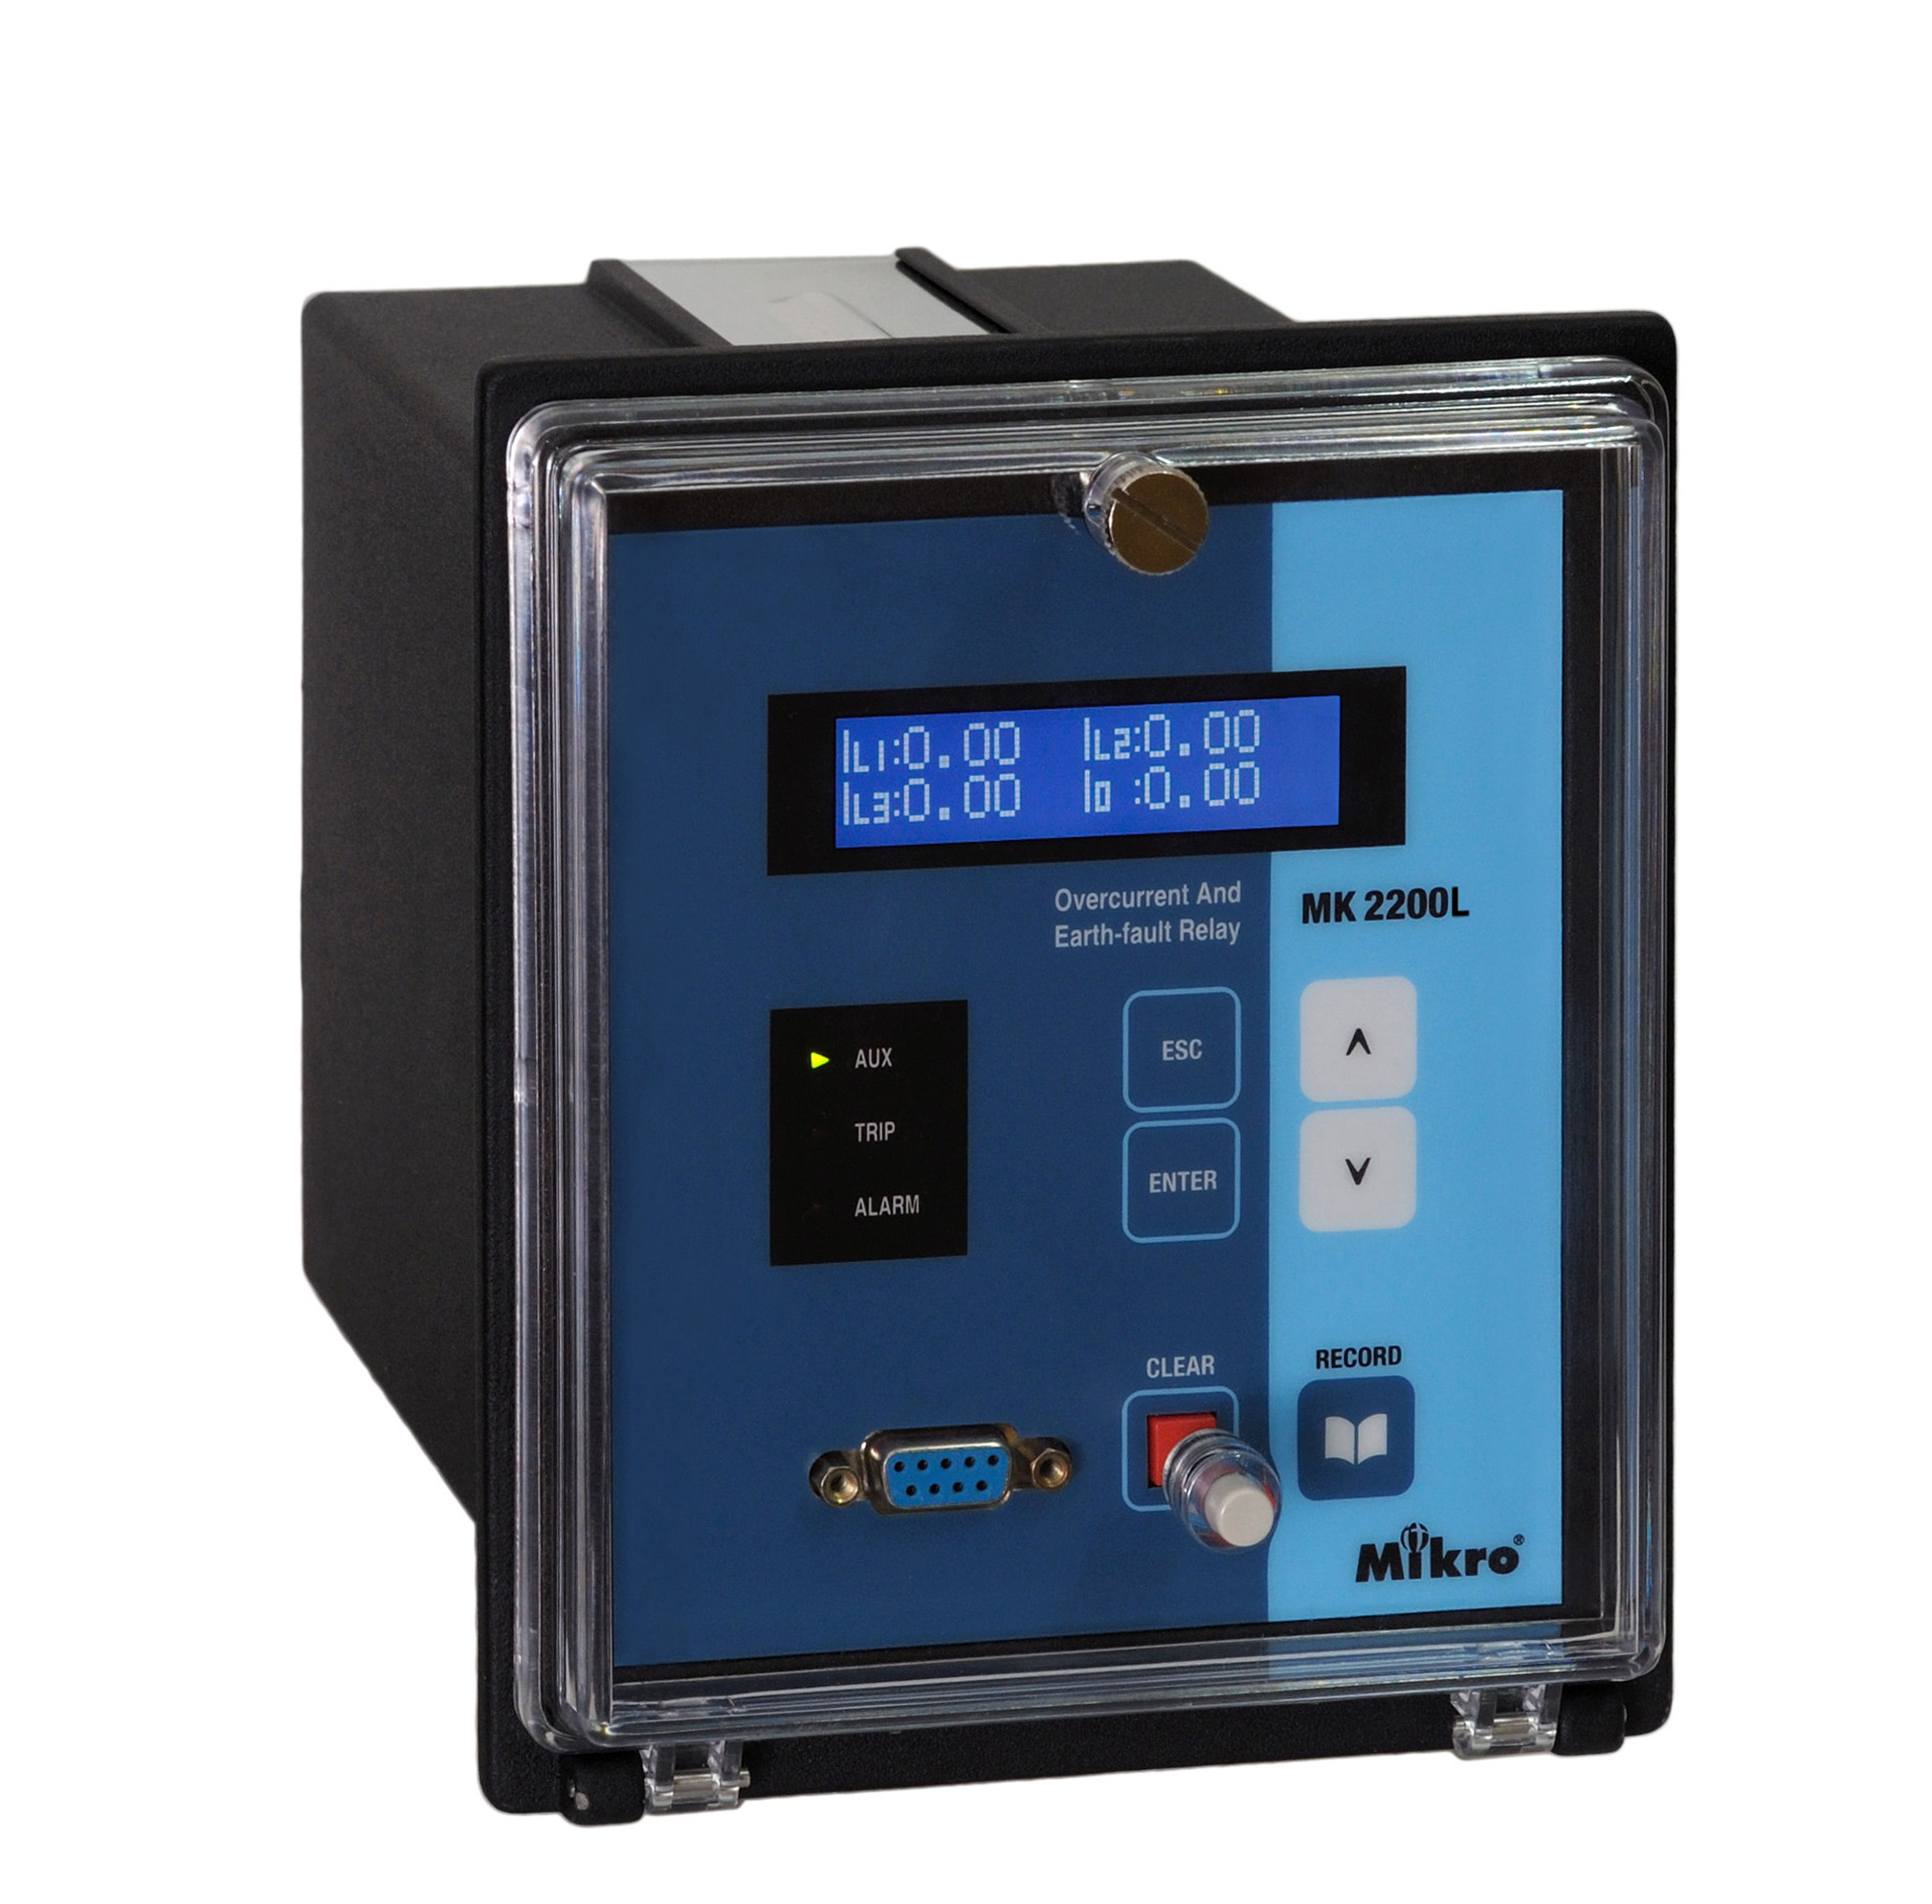 mikro MK 2200L combined overcurrent and earth-fault relay